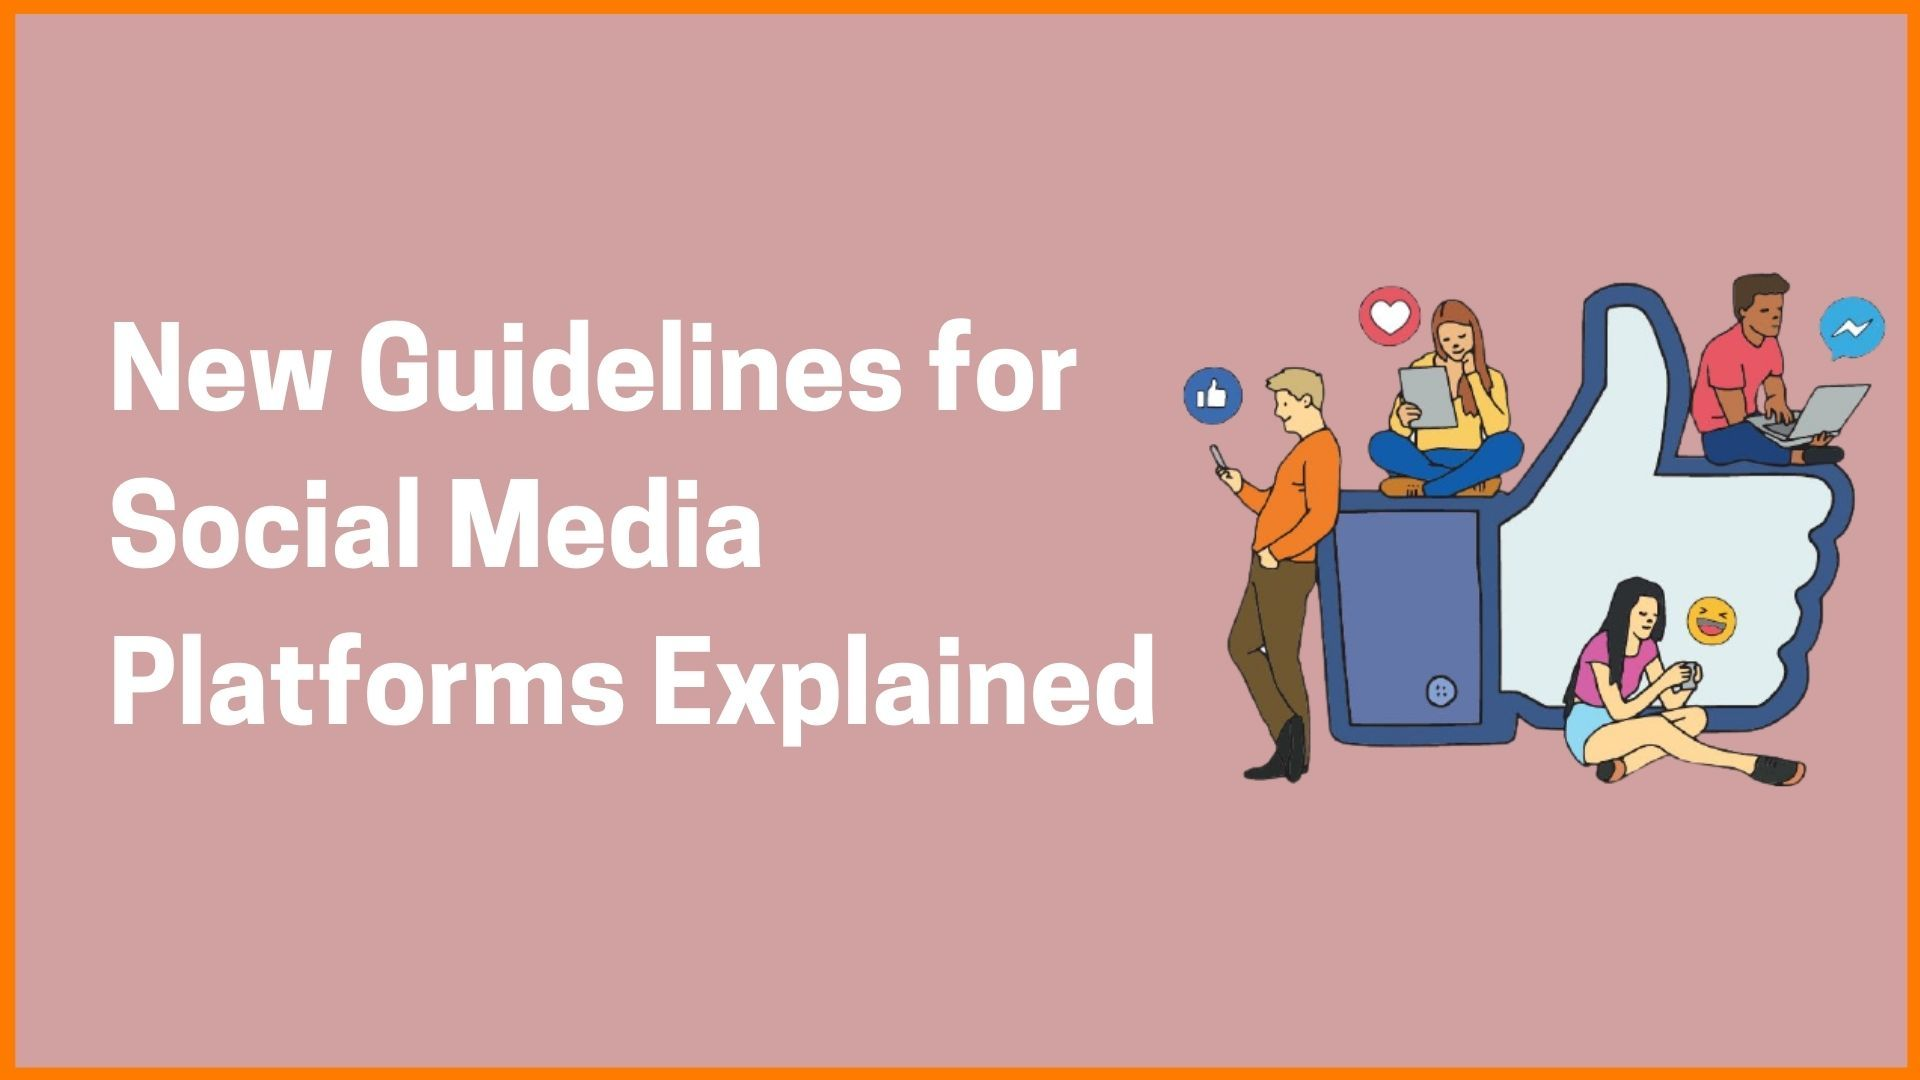 New Guidelines for Social Media Platforms Explained